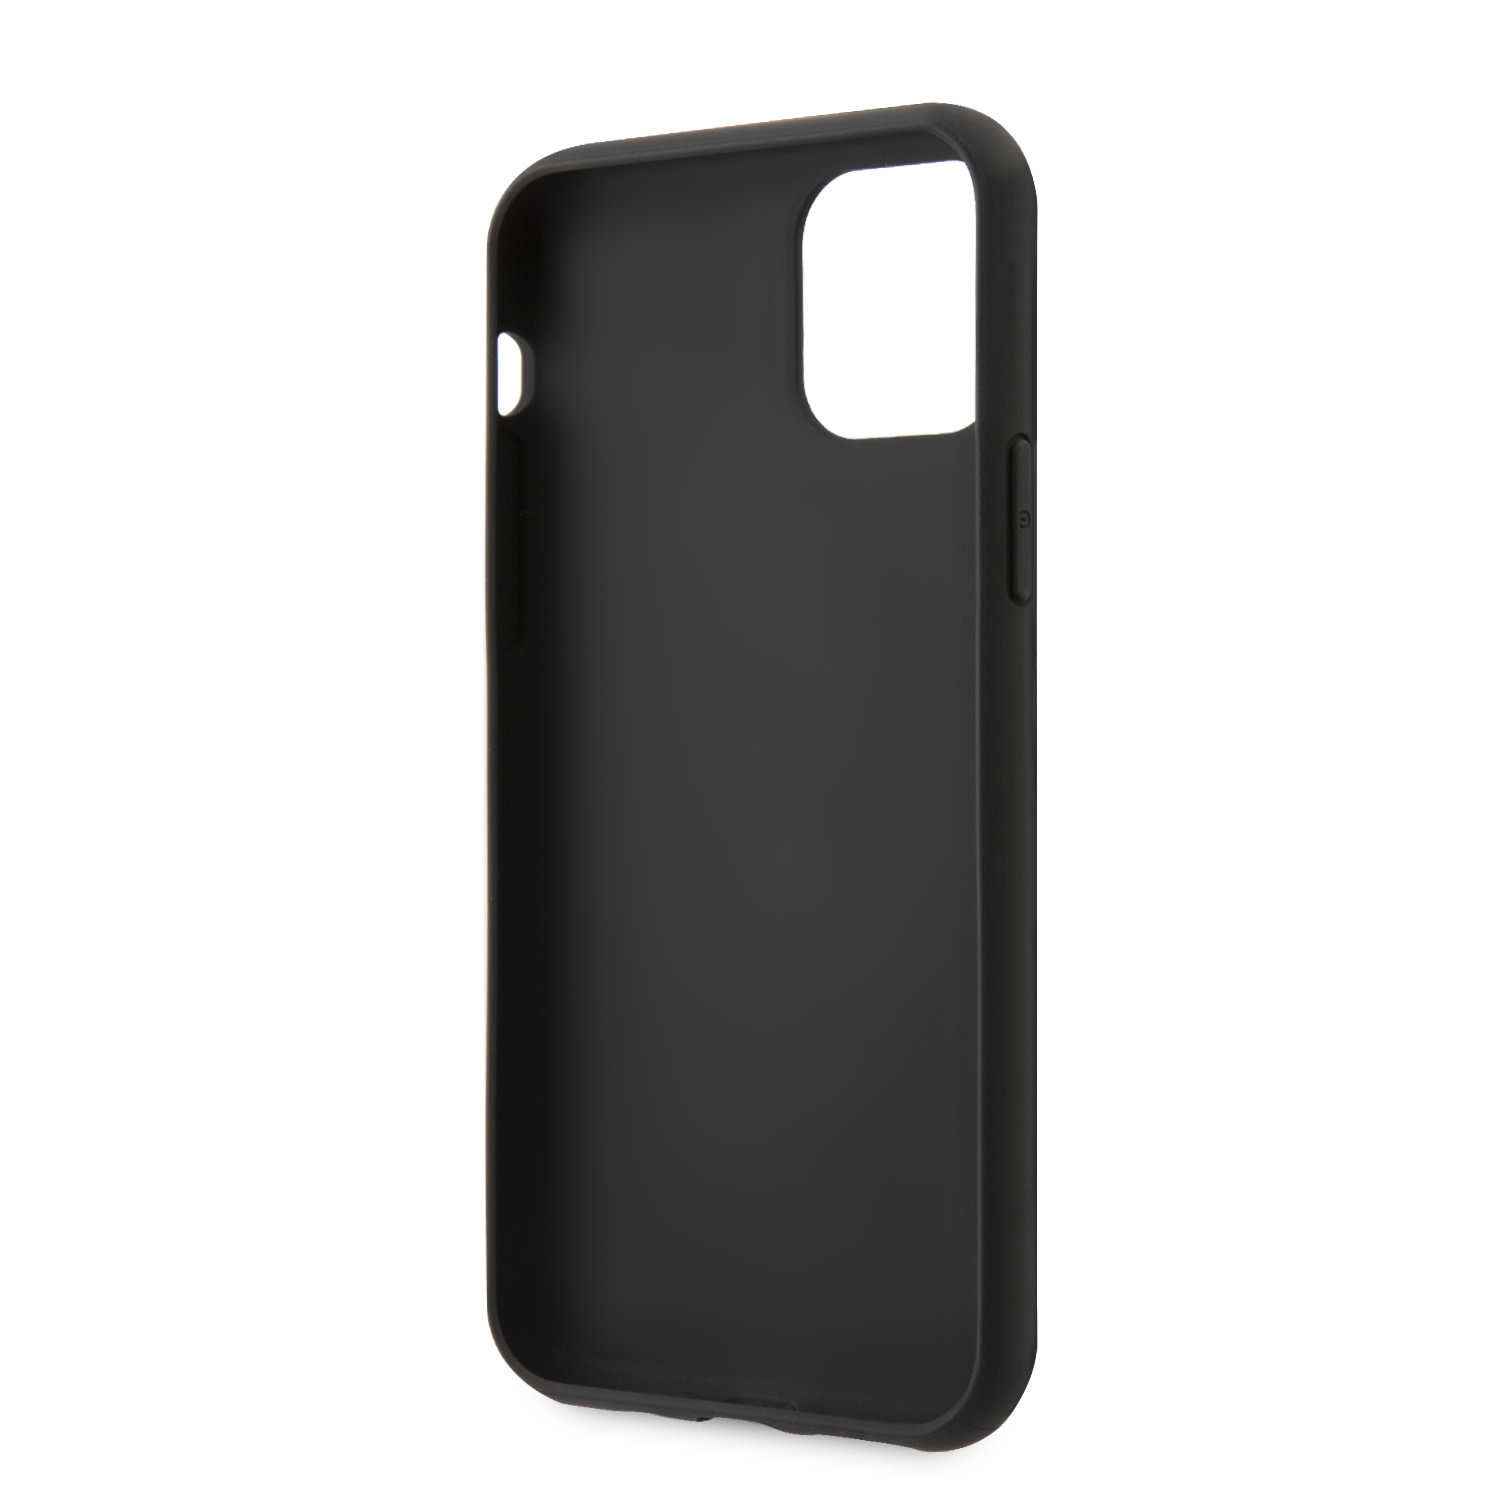 Guess Backcover hoes Zwart voor de iPhone 11 Pro